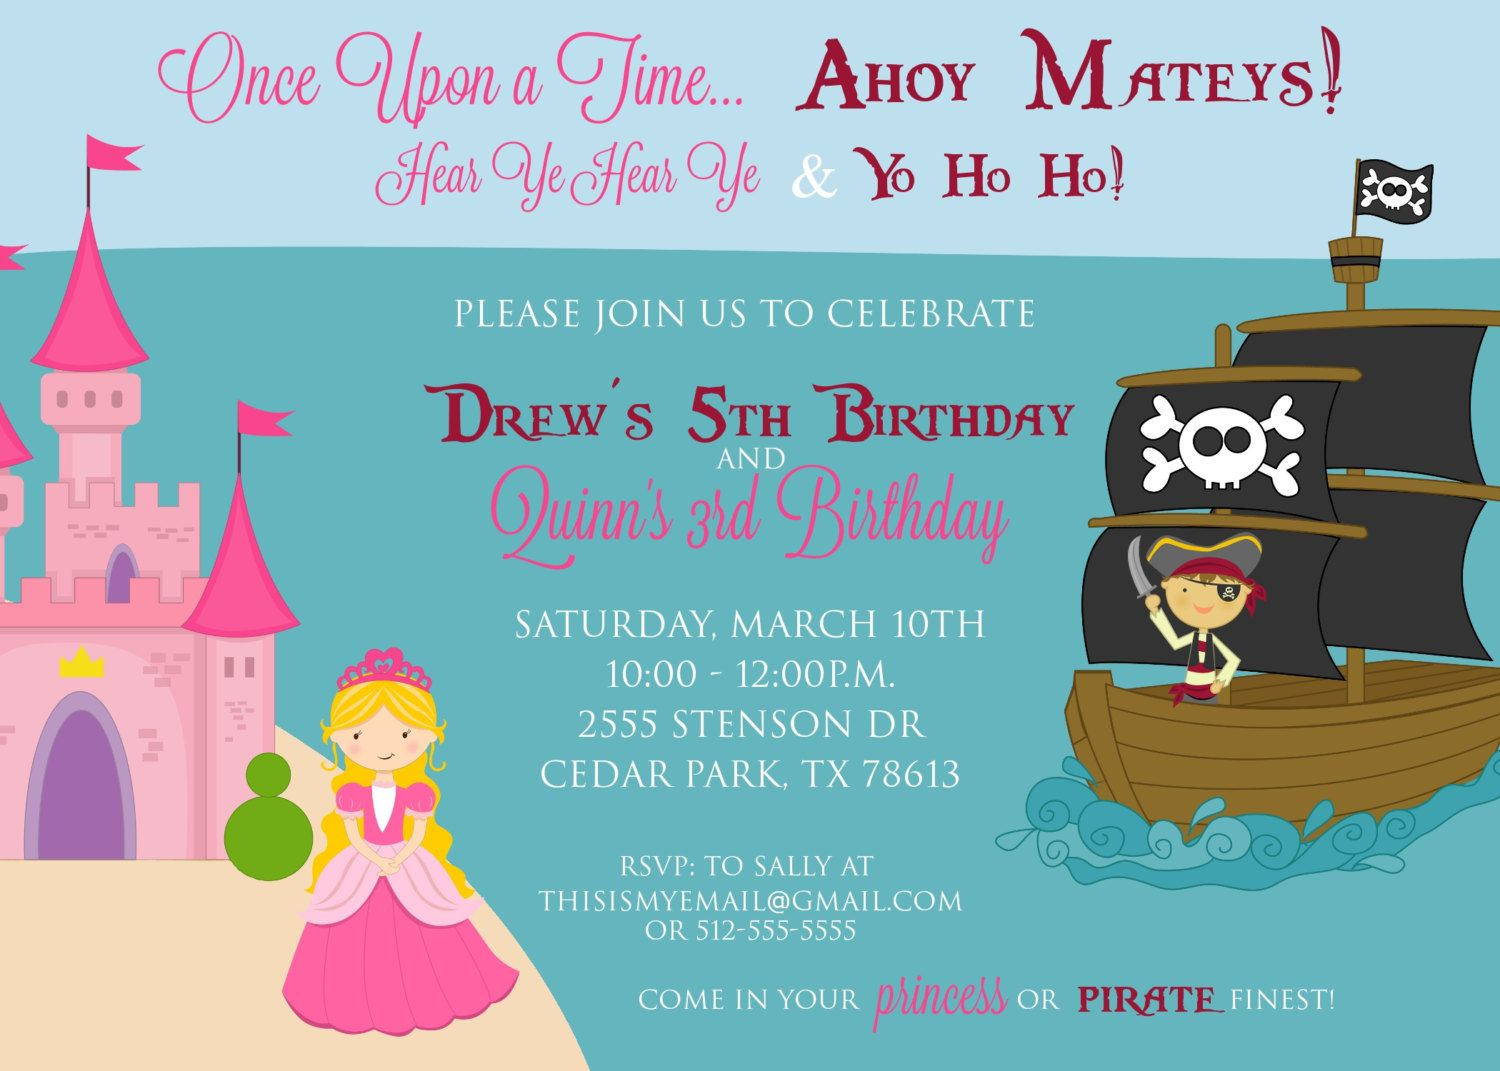 Princess and Pirate Joint Birthday Party Invitation Custom – Pirates and Princess Party Invitations